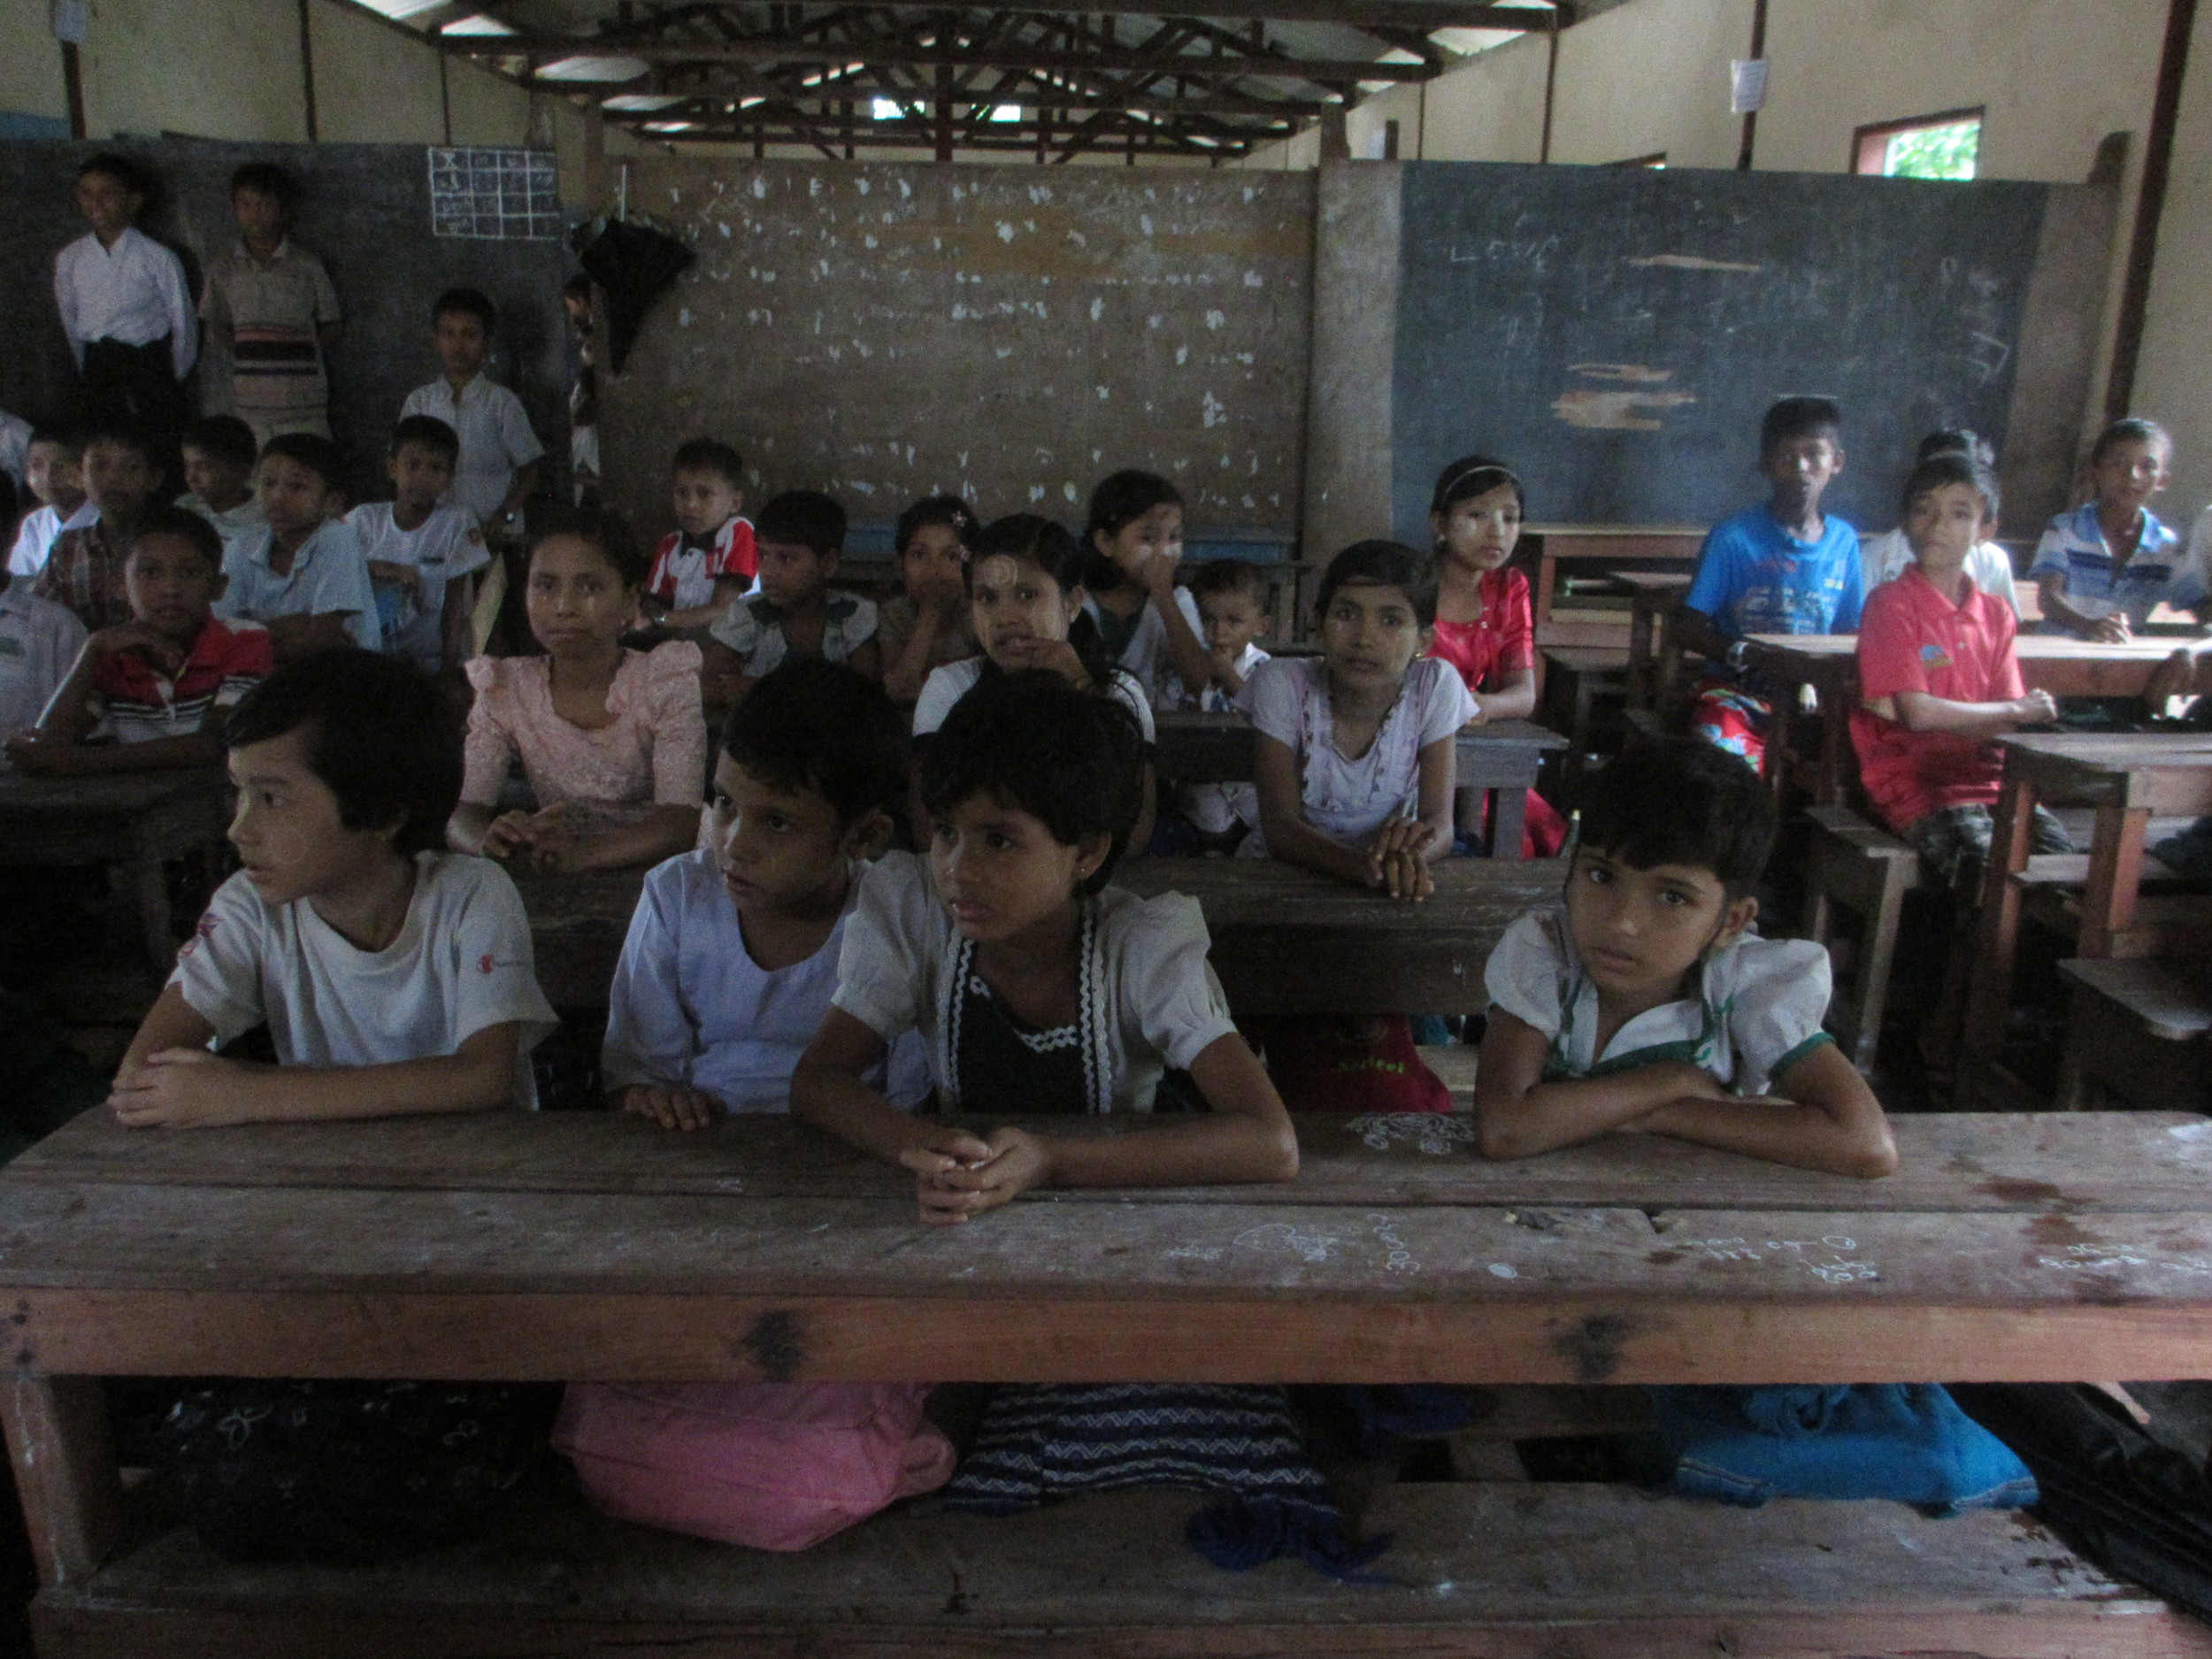 With assistance from international organizations, the Rohingya have started educating their children. But Rohingya teachers are not paid, and facilities for secondary students do not exist yet.